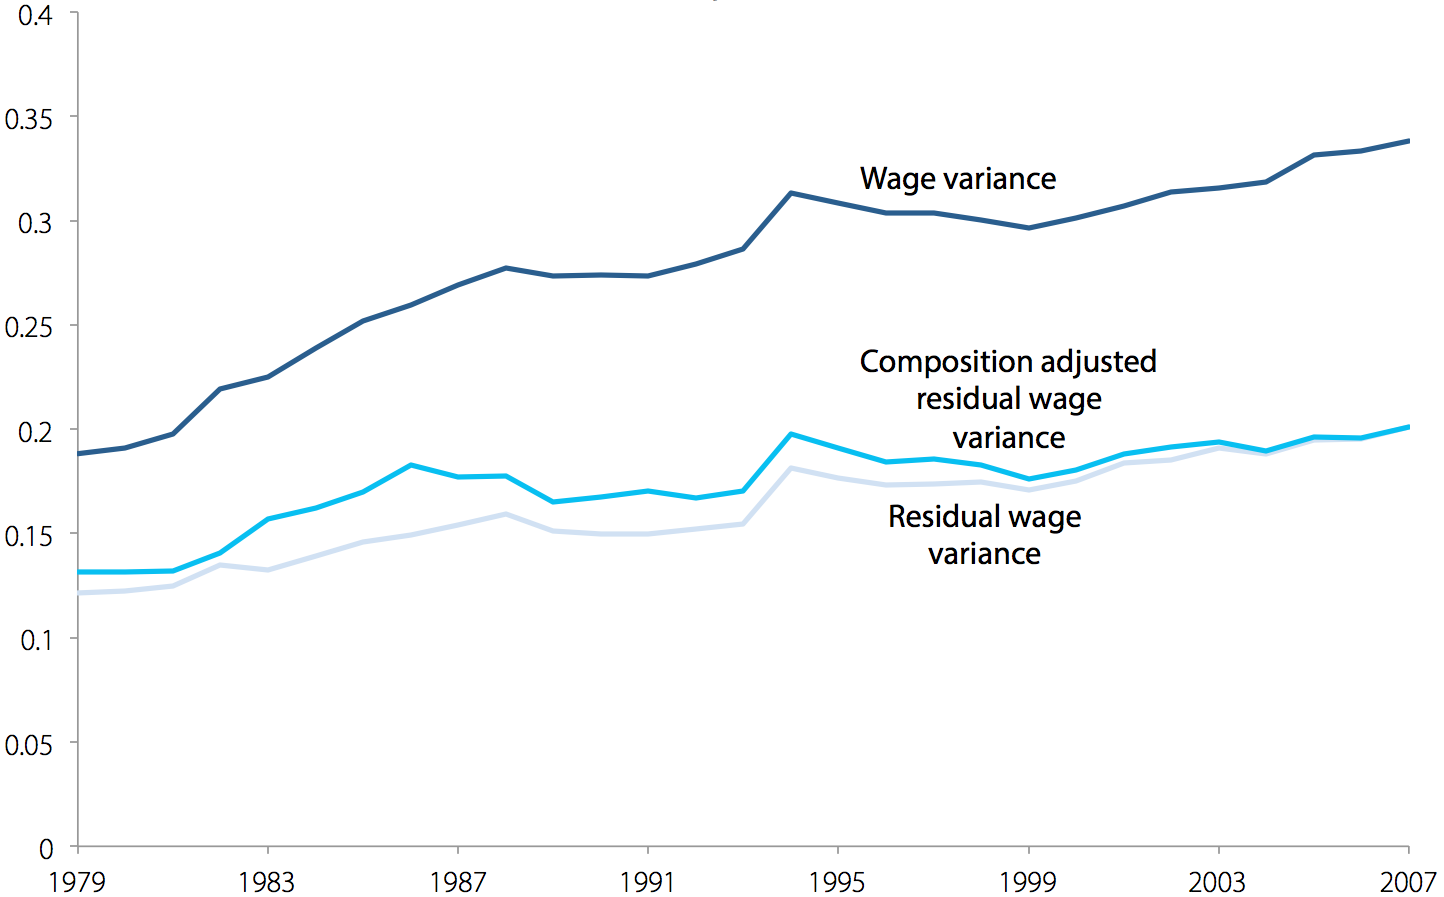 Wage variance, residual wage variance, and composition adjusted residual wage variance for women, 1979–2007